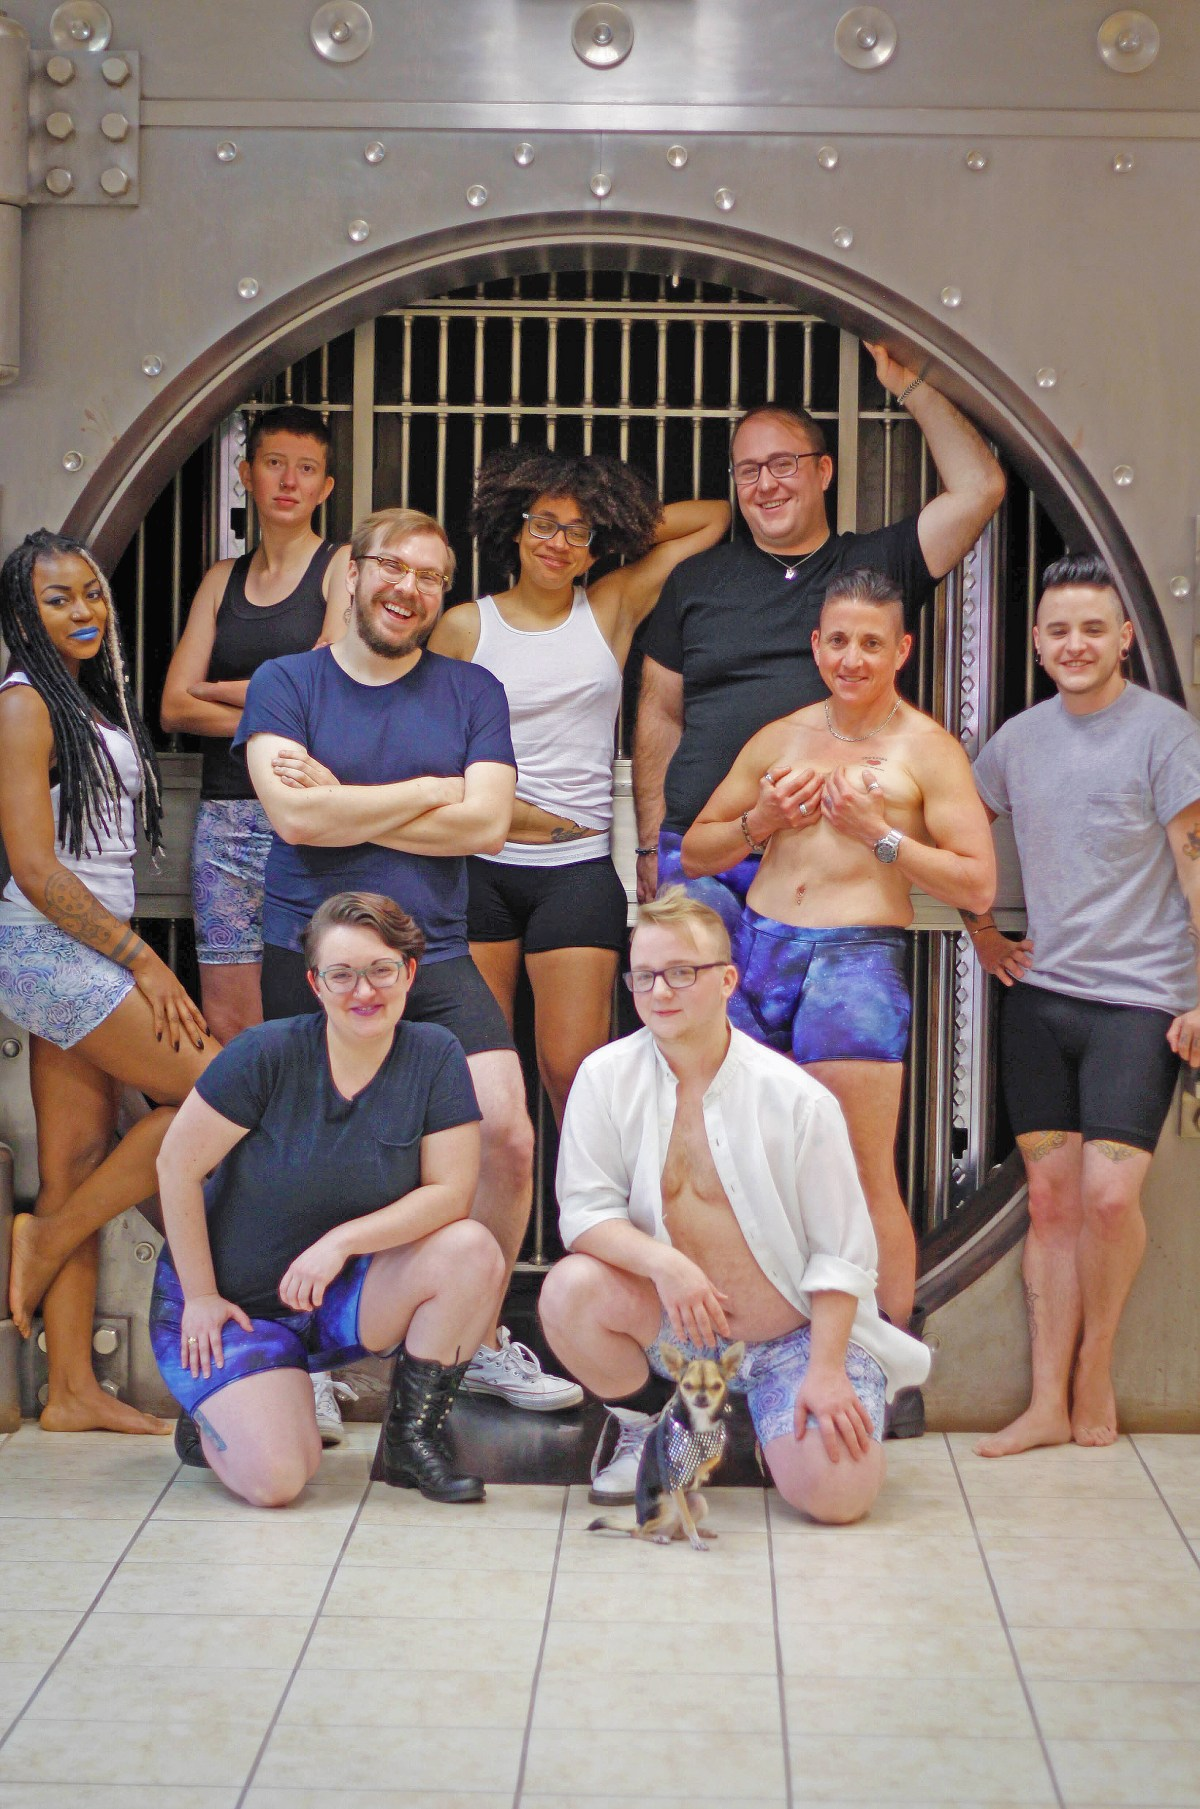 Of all the photos, I wish you could see this one. 9 people in gender-neutral boxer-briefs. Each in a different spot on the gender spectrum, smiling. Truly a beautiful show of emotion and happiness. You can feel this photo.